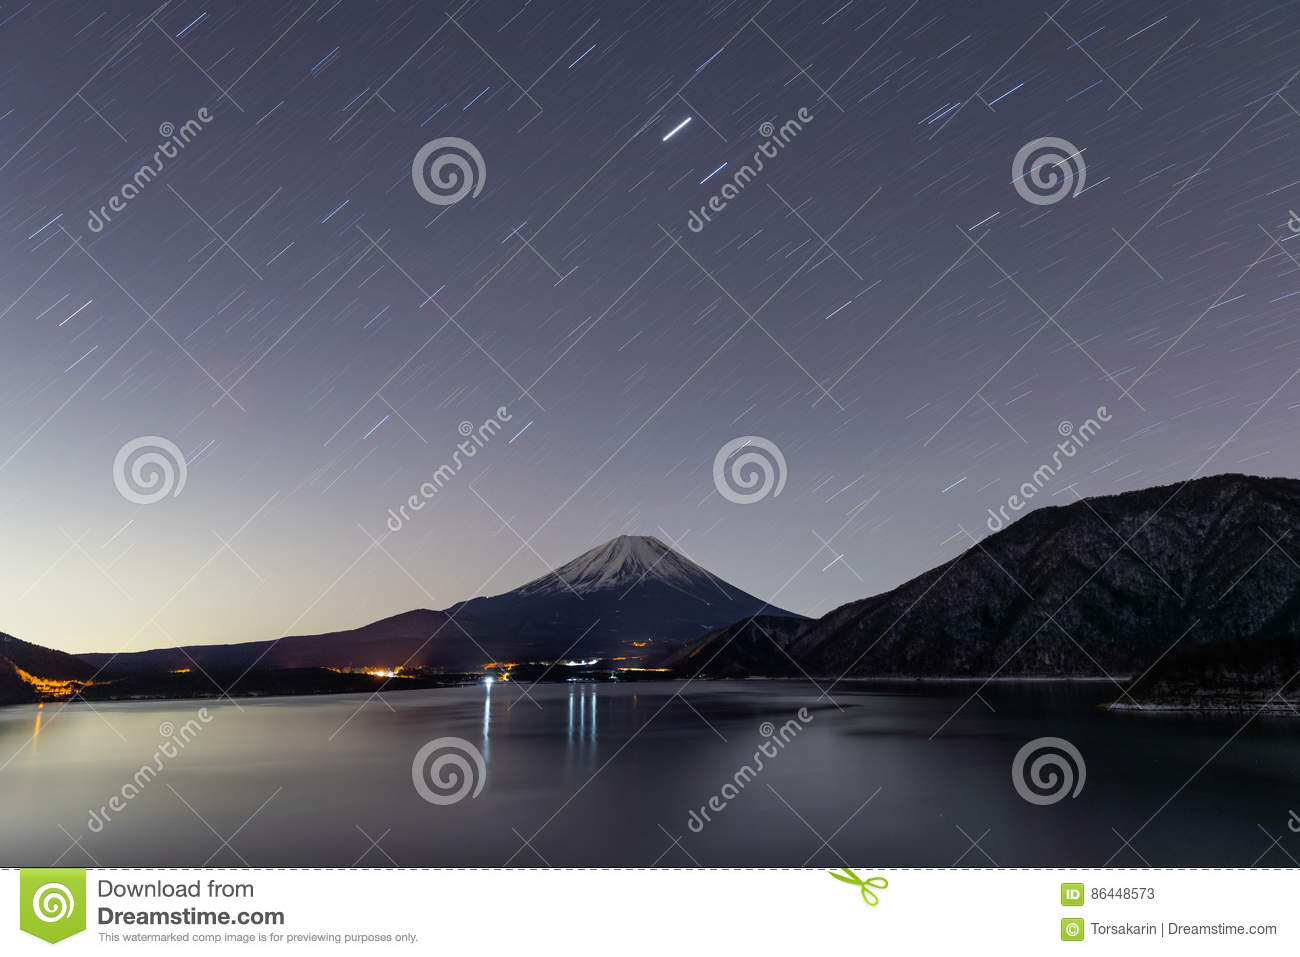 Lake Motosu and mt.Fuji at night time